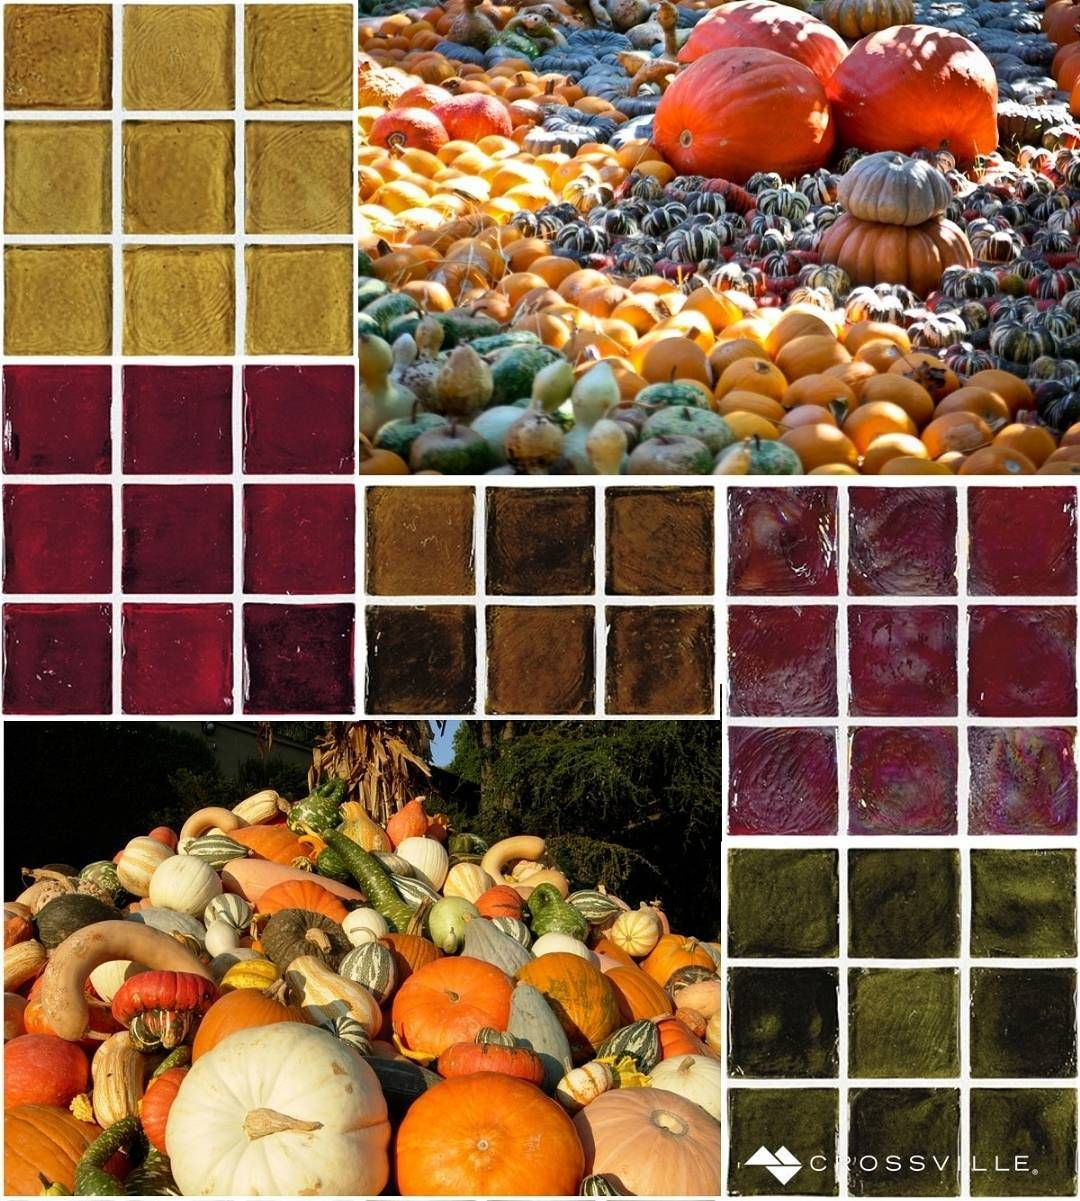 This #MosaicMonday we celebrate the rich earthen hues of autumn's bounty with these vibrant selections from our Origins Glass tile collection. (Pumpkin Patch by Adrian Valenzuela: http://bit.ly/1i0CL5z and Longwood Fall Cornucopia: http://bit.ly/1W90j5V) by crossvilleinc